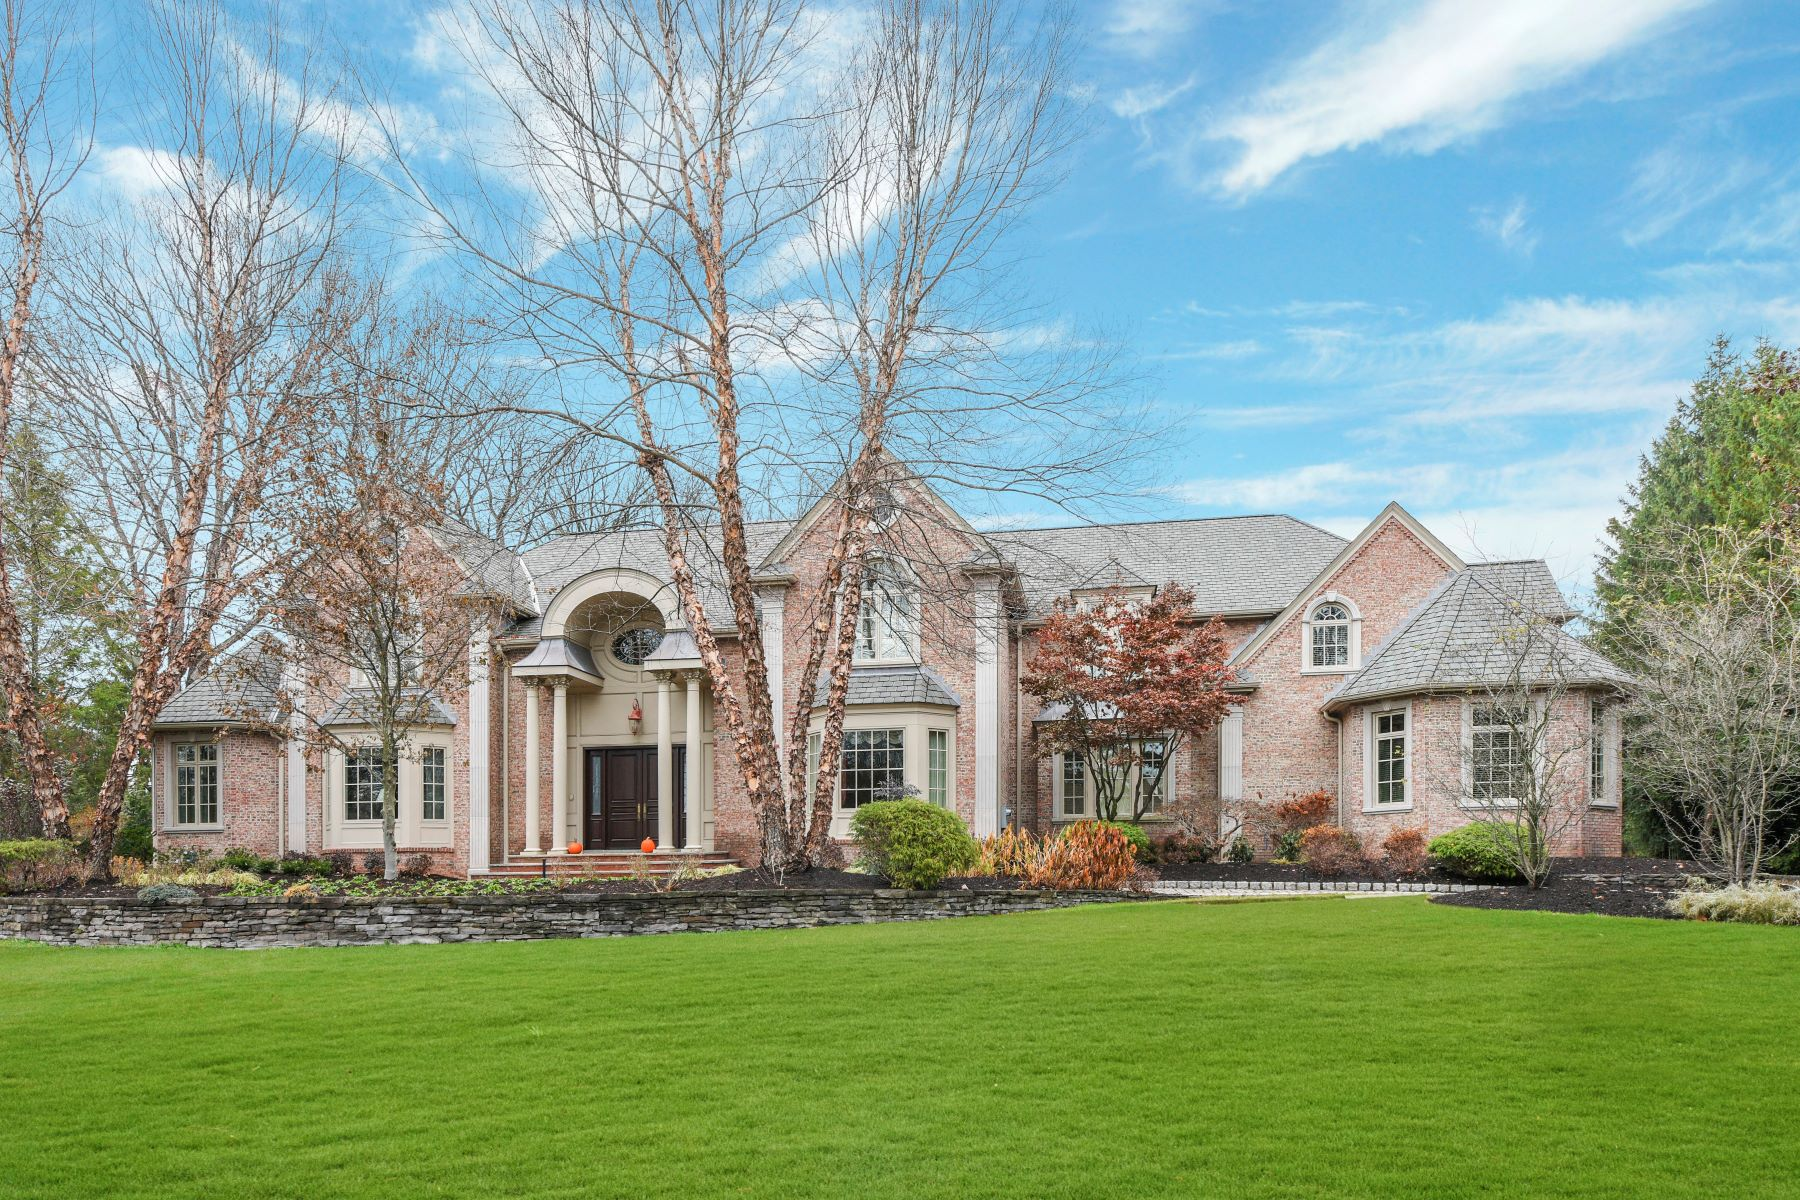 Single Family Homes for Sale at Old Tappan at its Best 32 O'Connors Lane, Old Tappan, New Jersey 07675 United States